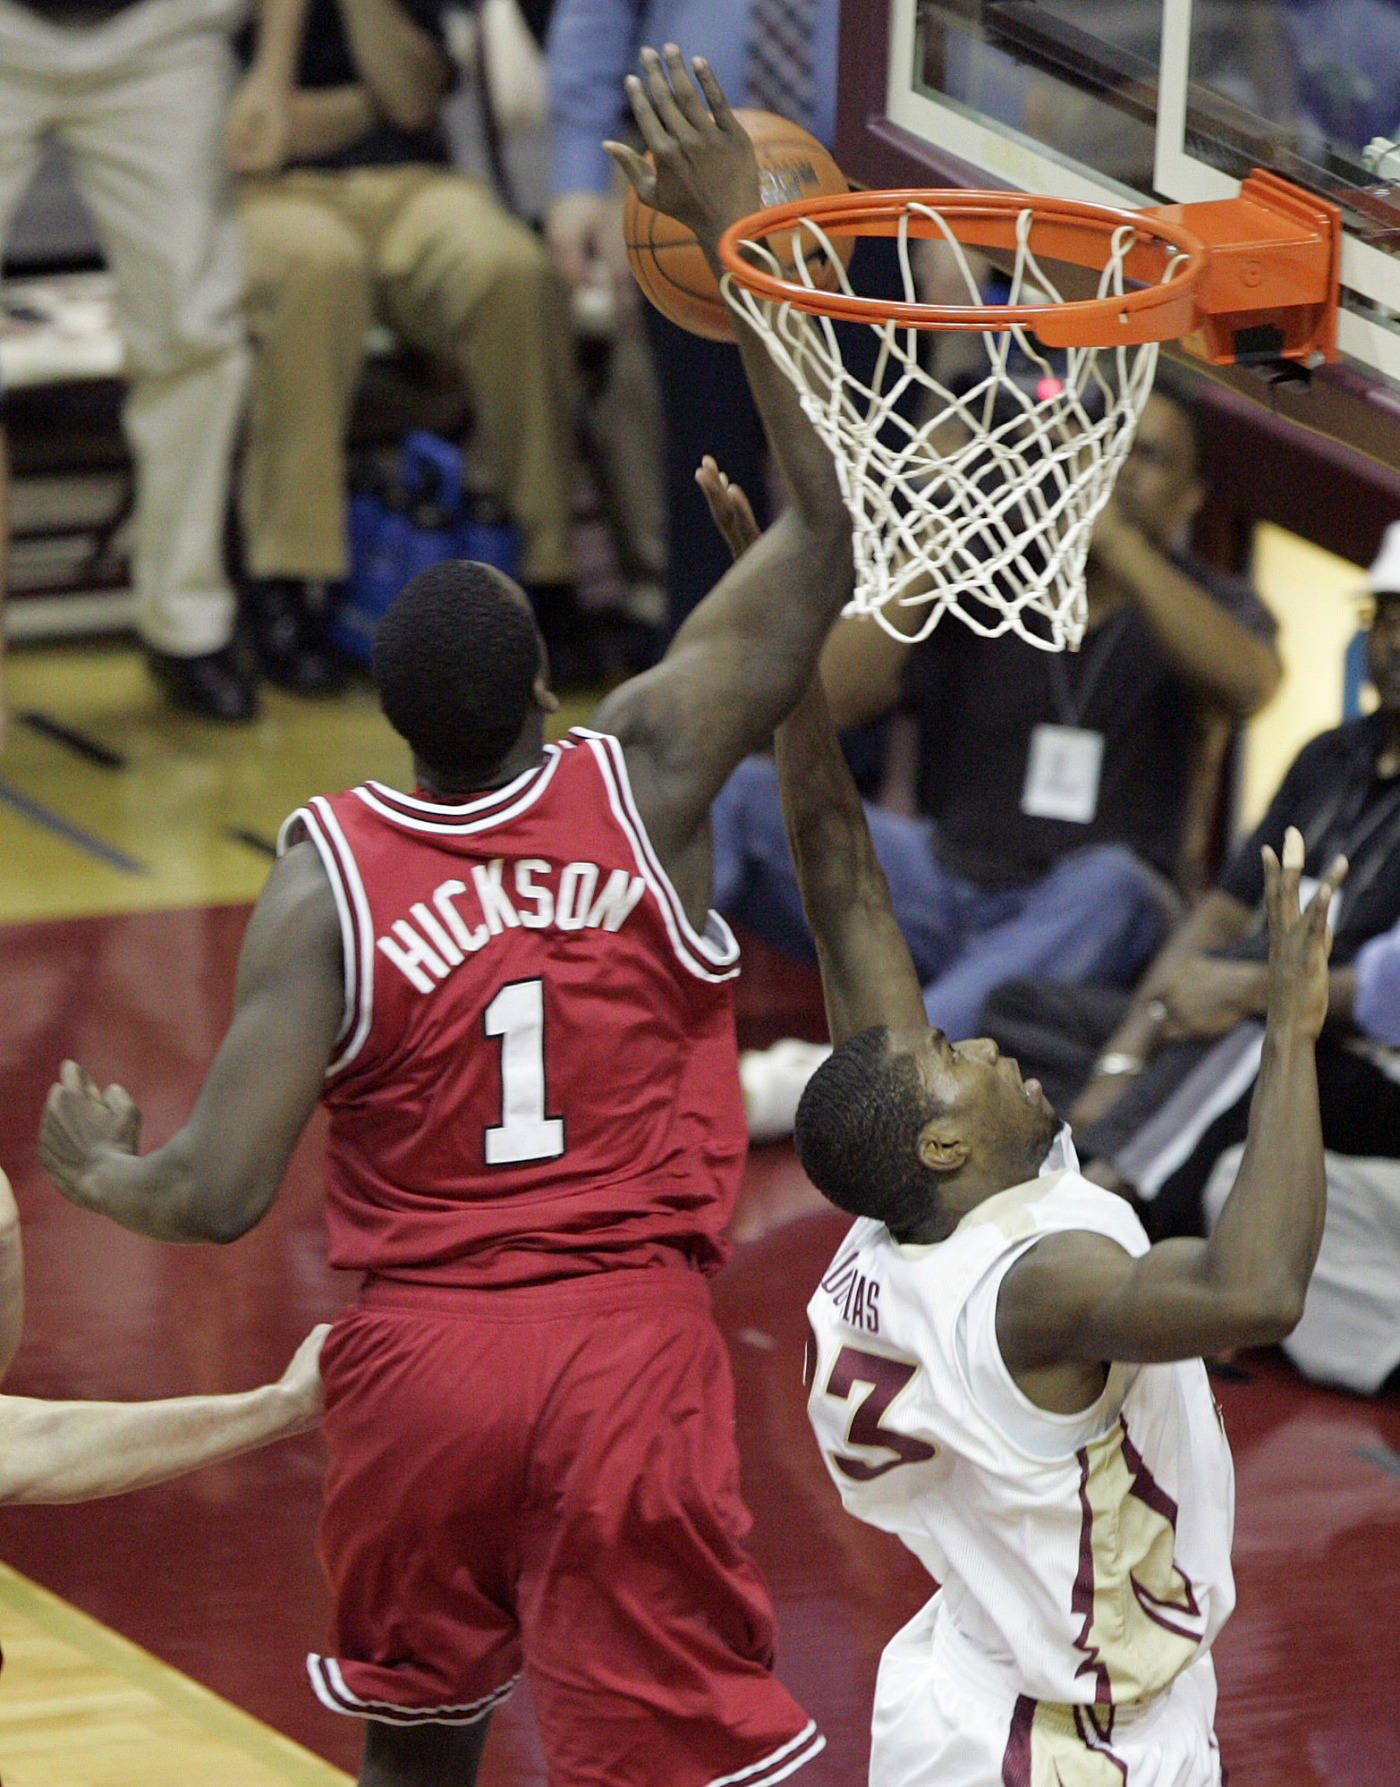 North Carolina State's J J Hickson (1) blocks a shot by Florida State's Toney Douglas that would have tied the score in the final seconds of the second half of a college basketball game on Saturday, Jan. 26, 2008 in Tallahassee, Fla. NC State hold on for a 69-66 win.